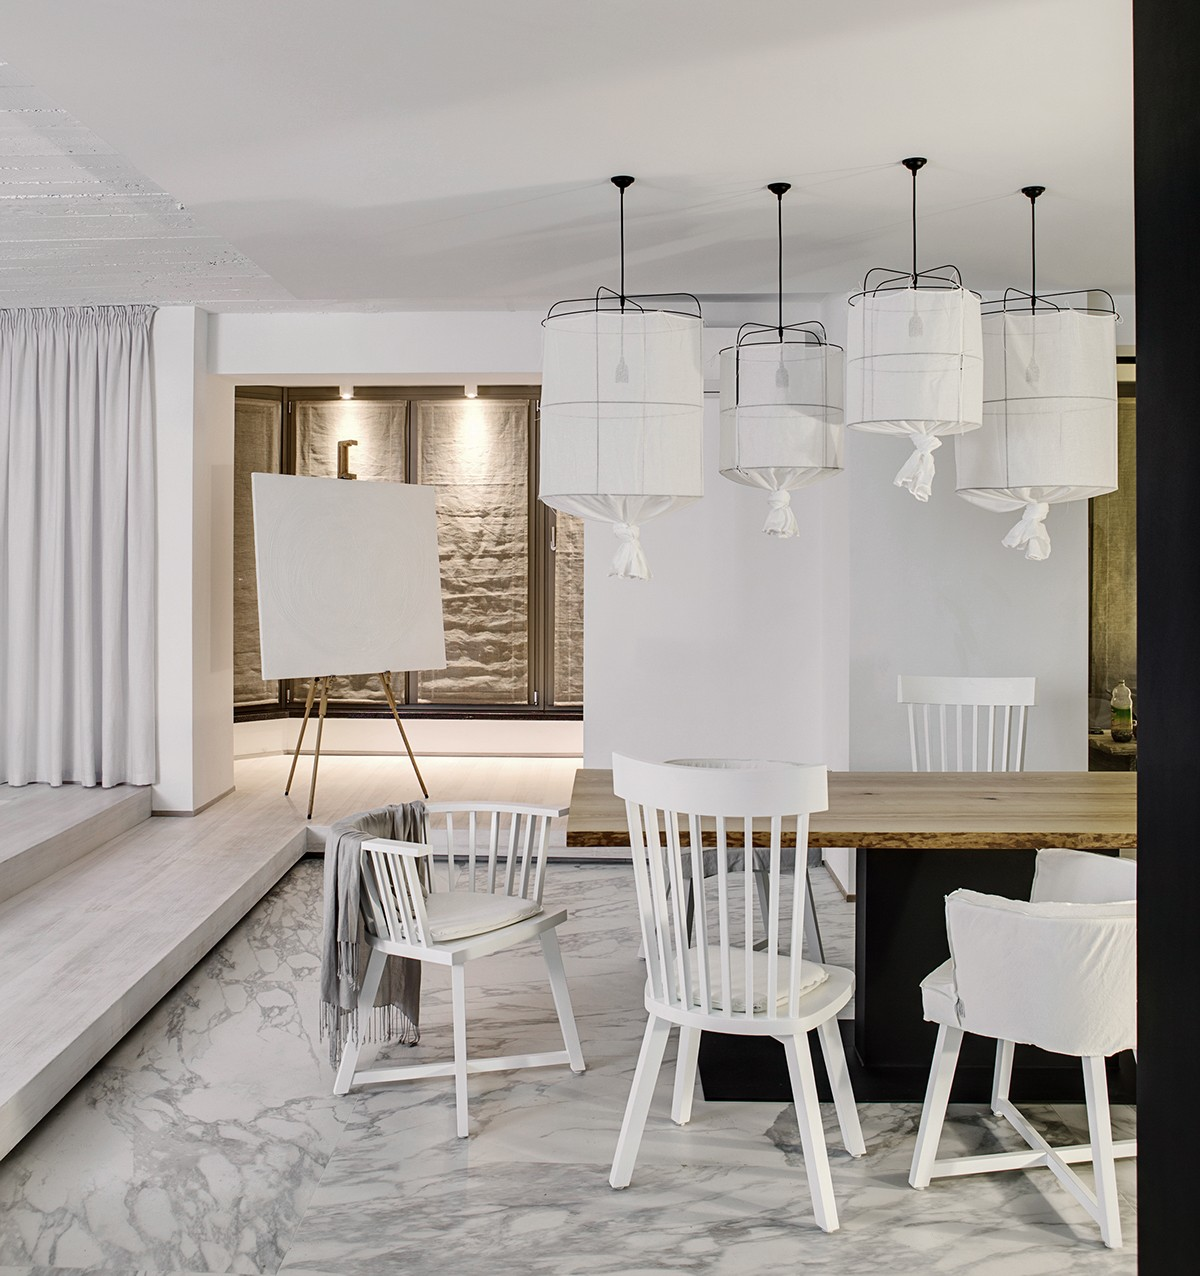 Wire Lamps With Cloth Shades - A bright white home with organic details